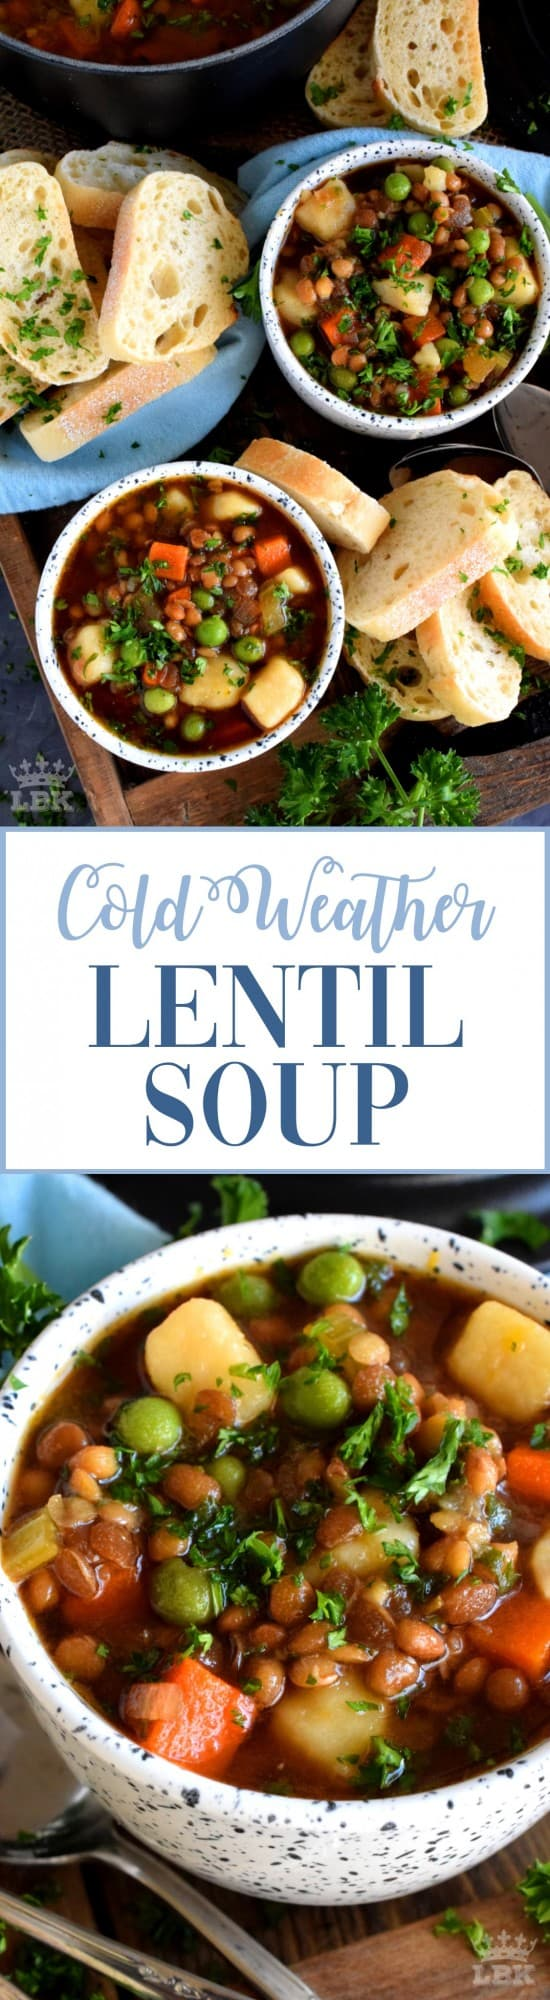 Cold Weather Lentil Soup - Finally a bowl of lentil soup with a nice thin broth, yet one that's hearty and filling enough to fight the cold weather chills!#soup #cold #weather #vegetarian #lentil #broth